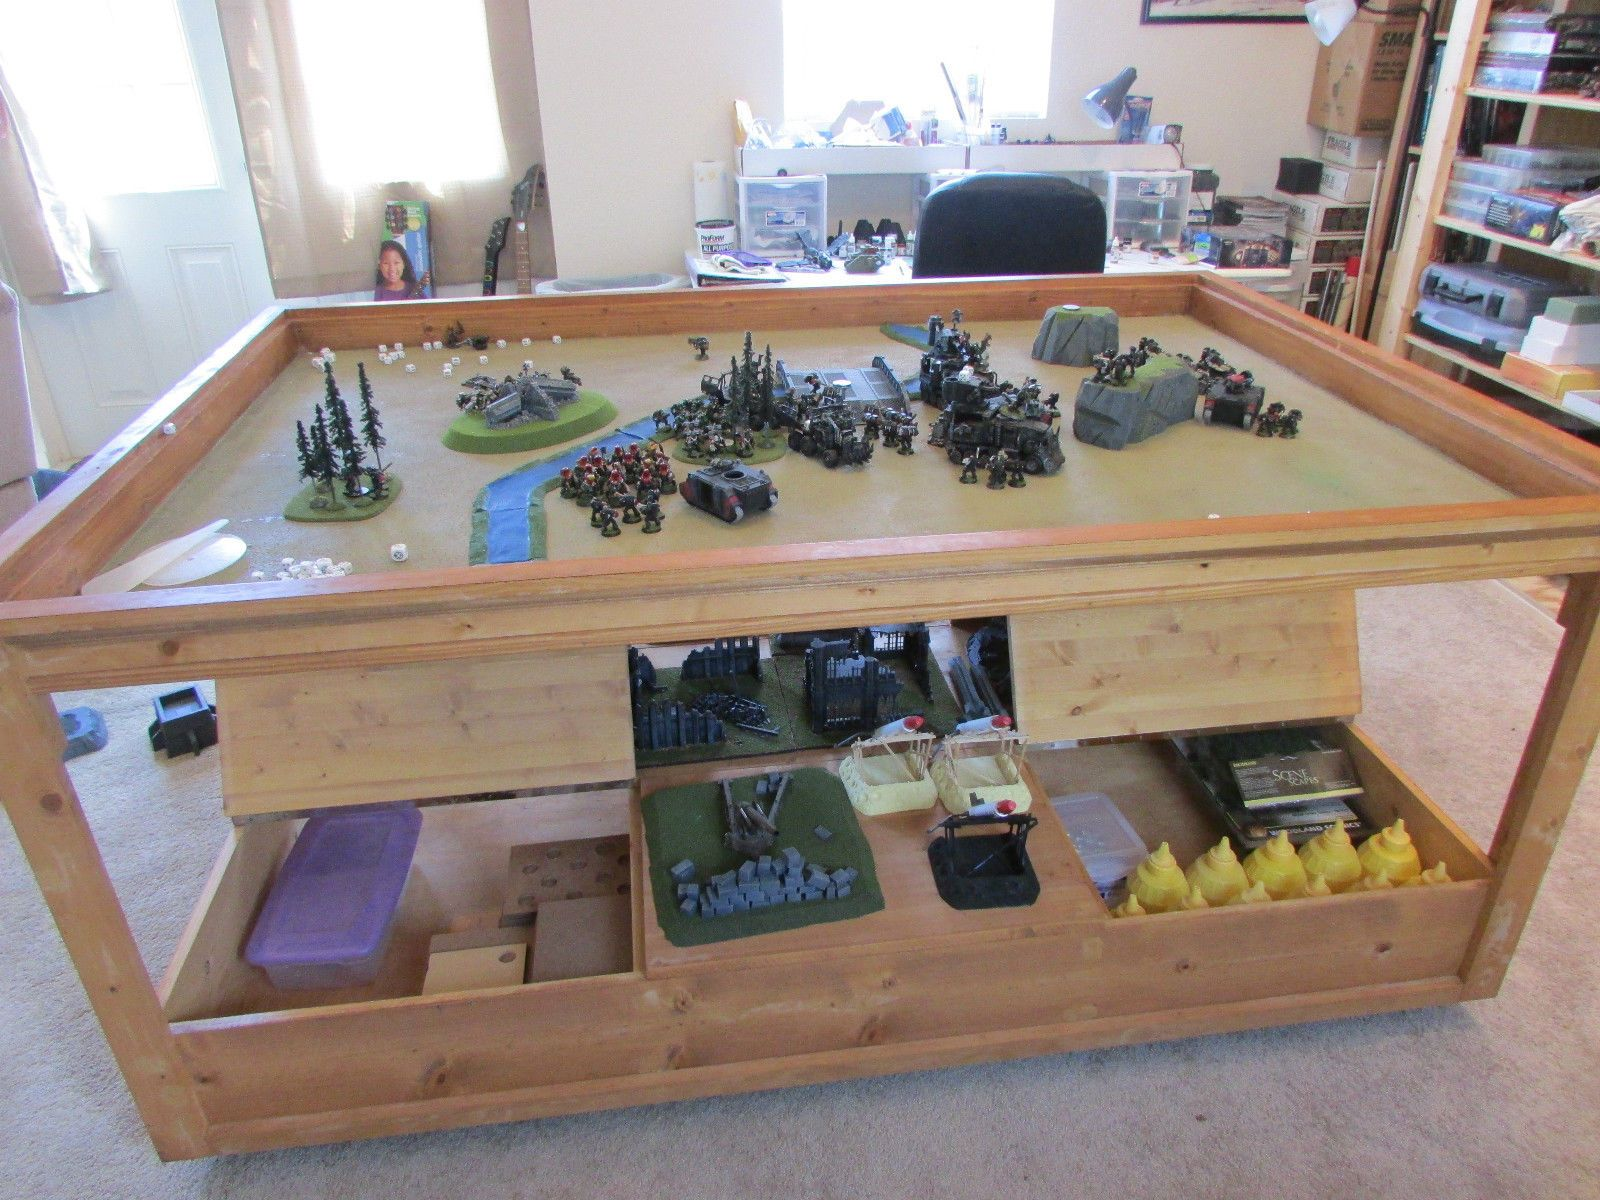 The perfect gaming table Geek Chic know s what they are doing